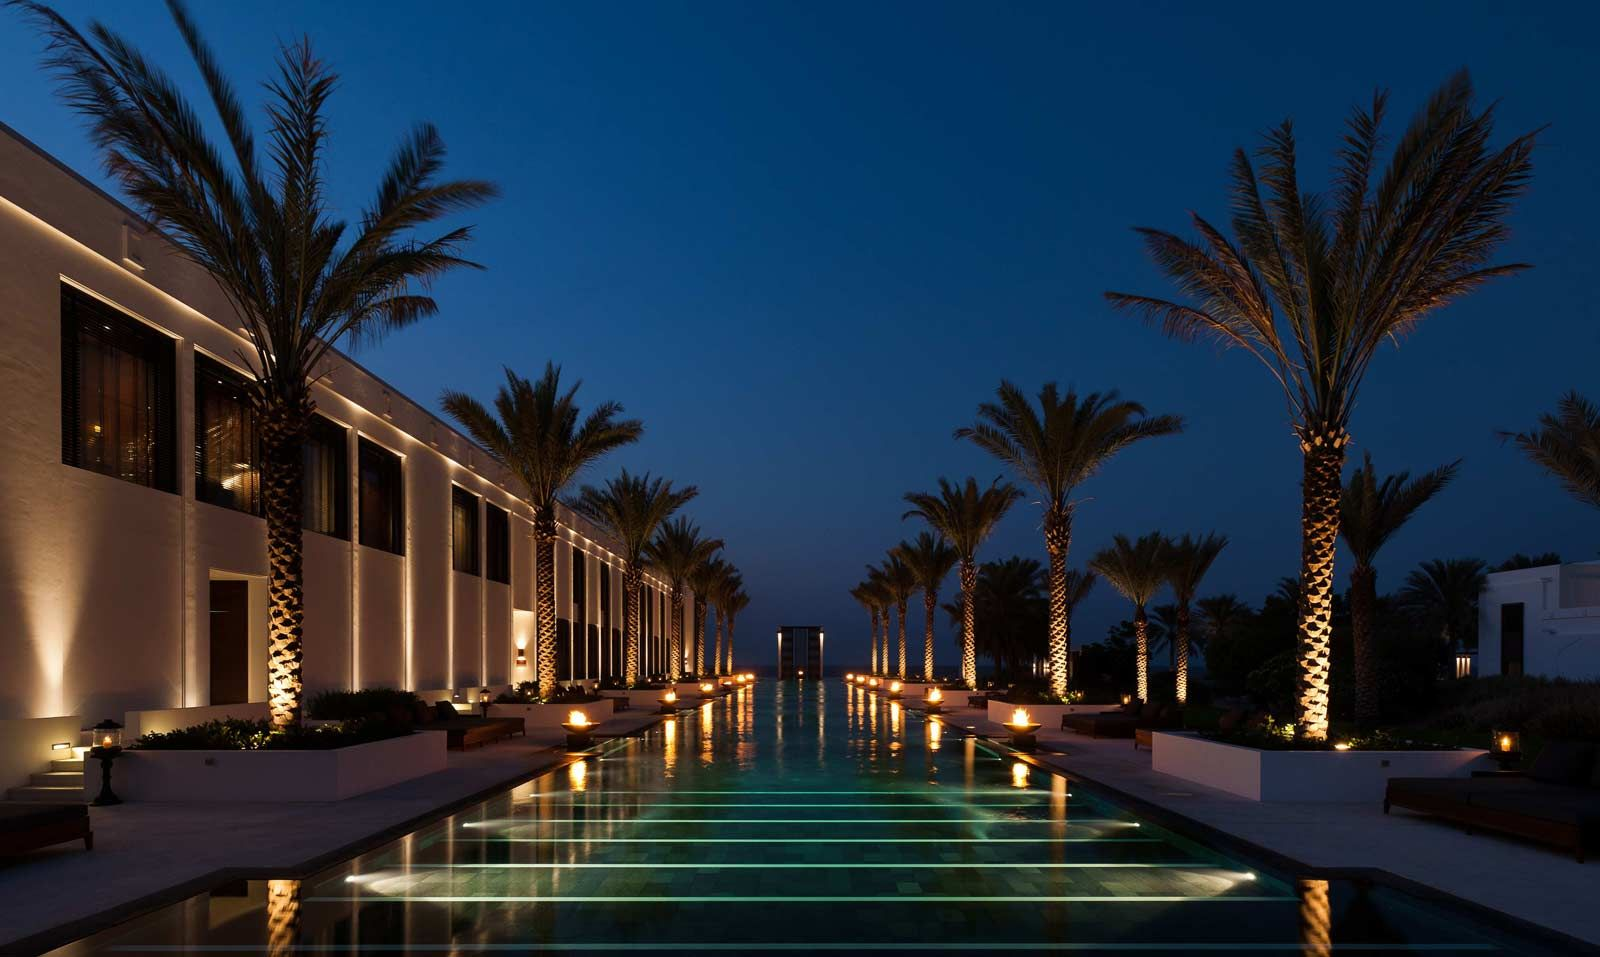 The Chedi Muscat Luxury Hotel Oman 5 Star Boutique Hotel Ghm Hotels Chedi Hotel The Chedi Muscat Oman Hotels